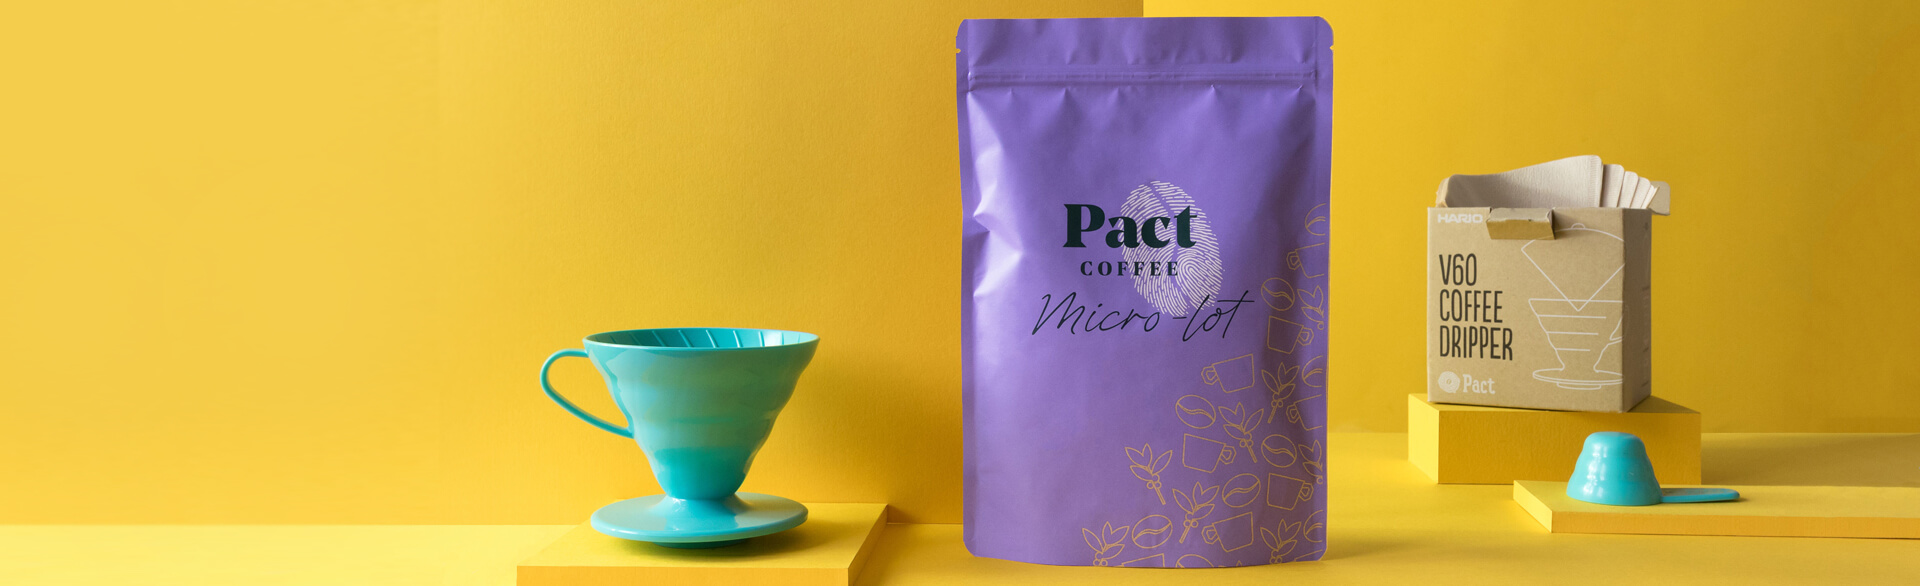 Red Carpet Club: Pact Coffee